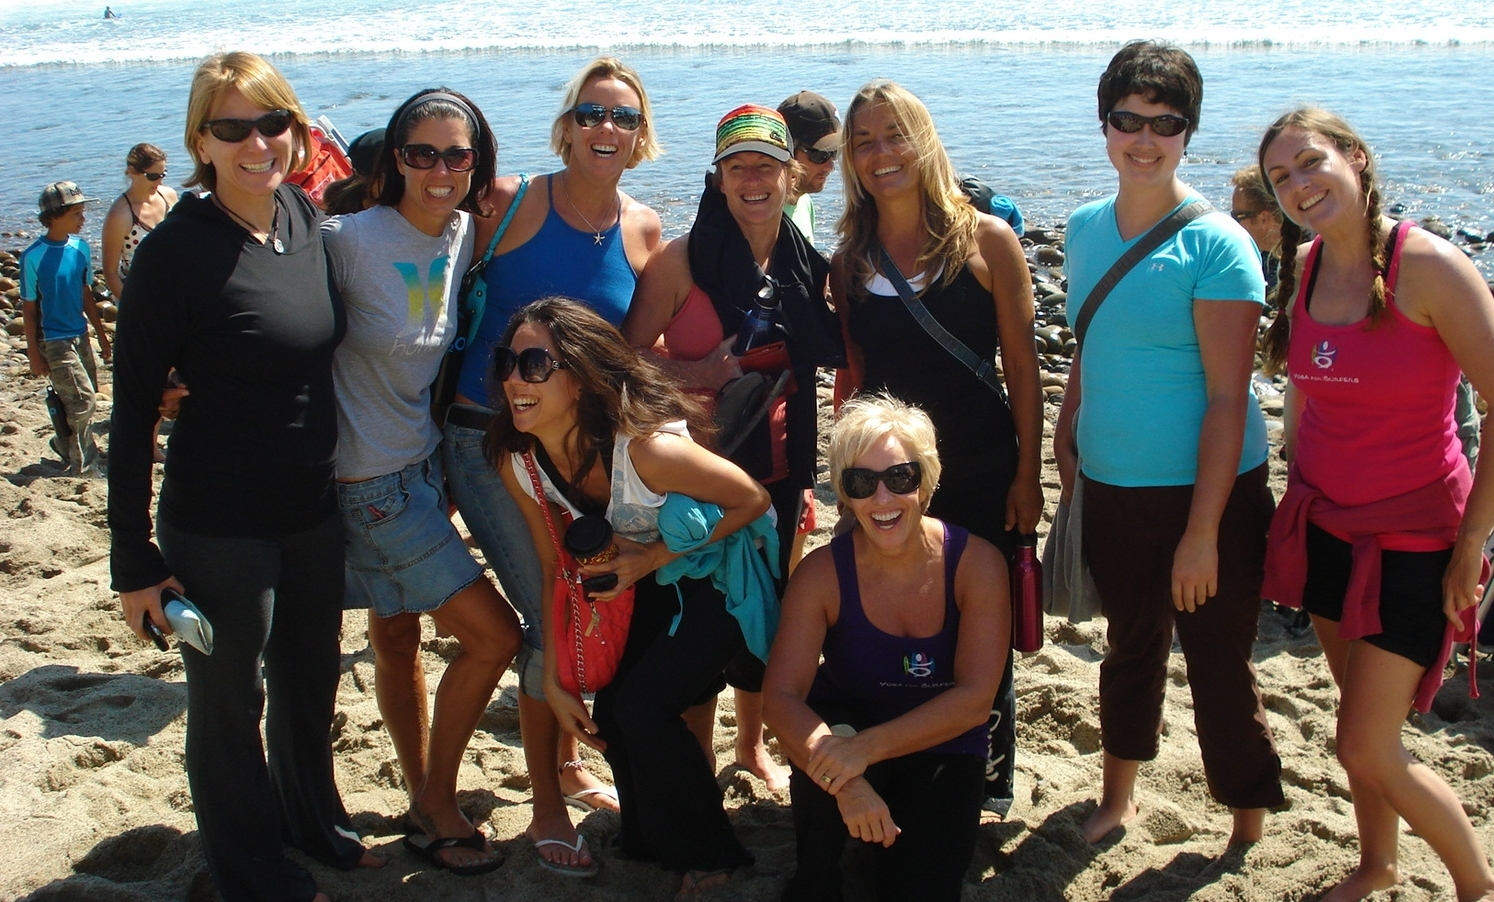 Participants come from all over the world to train and surf with Peggy in San Clemente